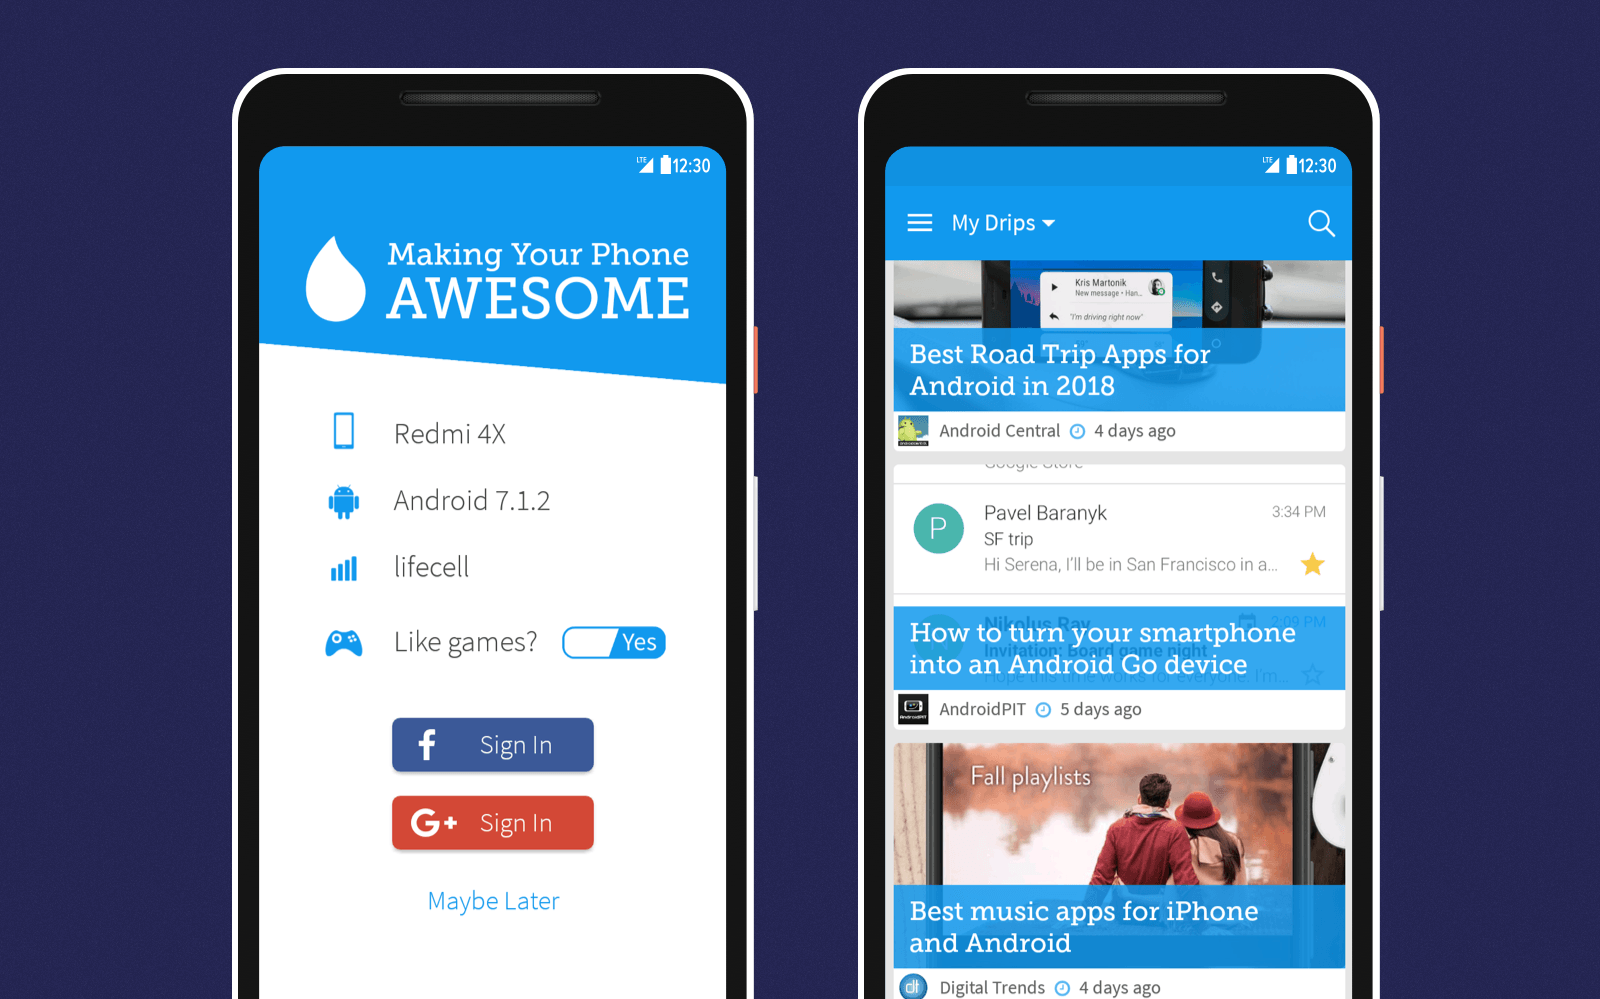 Drippler is a personalized software that can offer updates for your mobile device